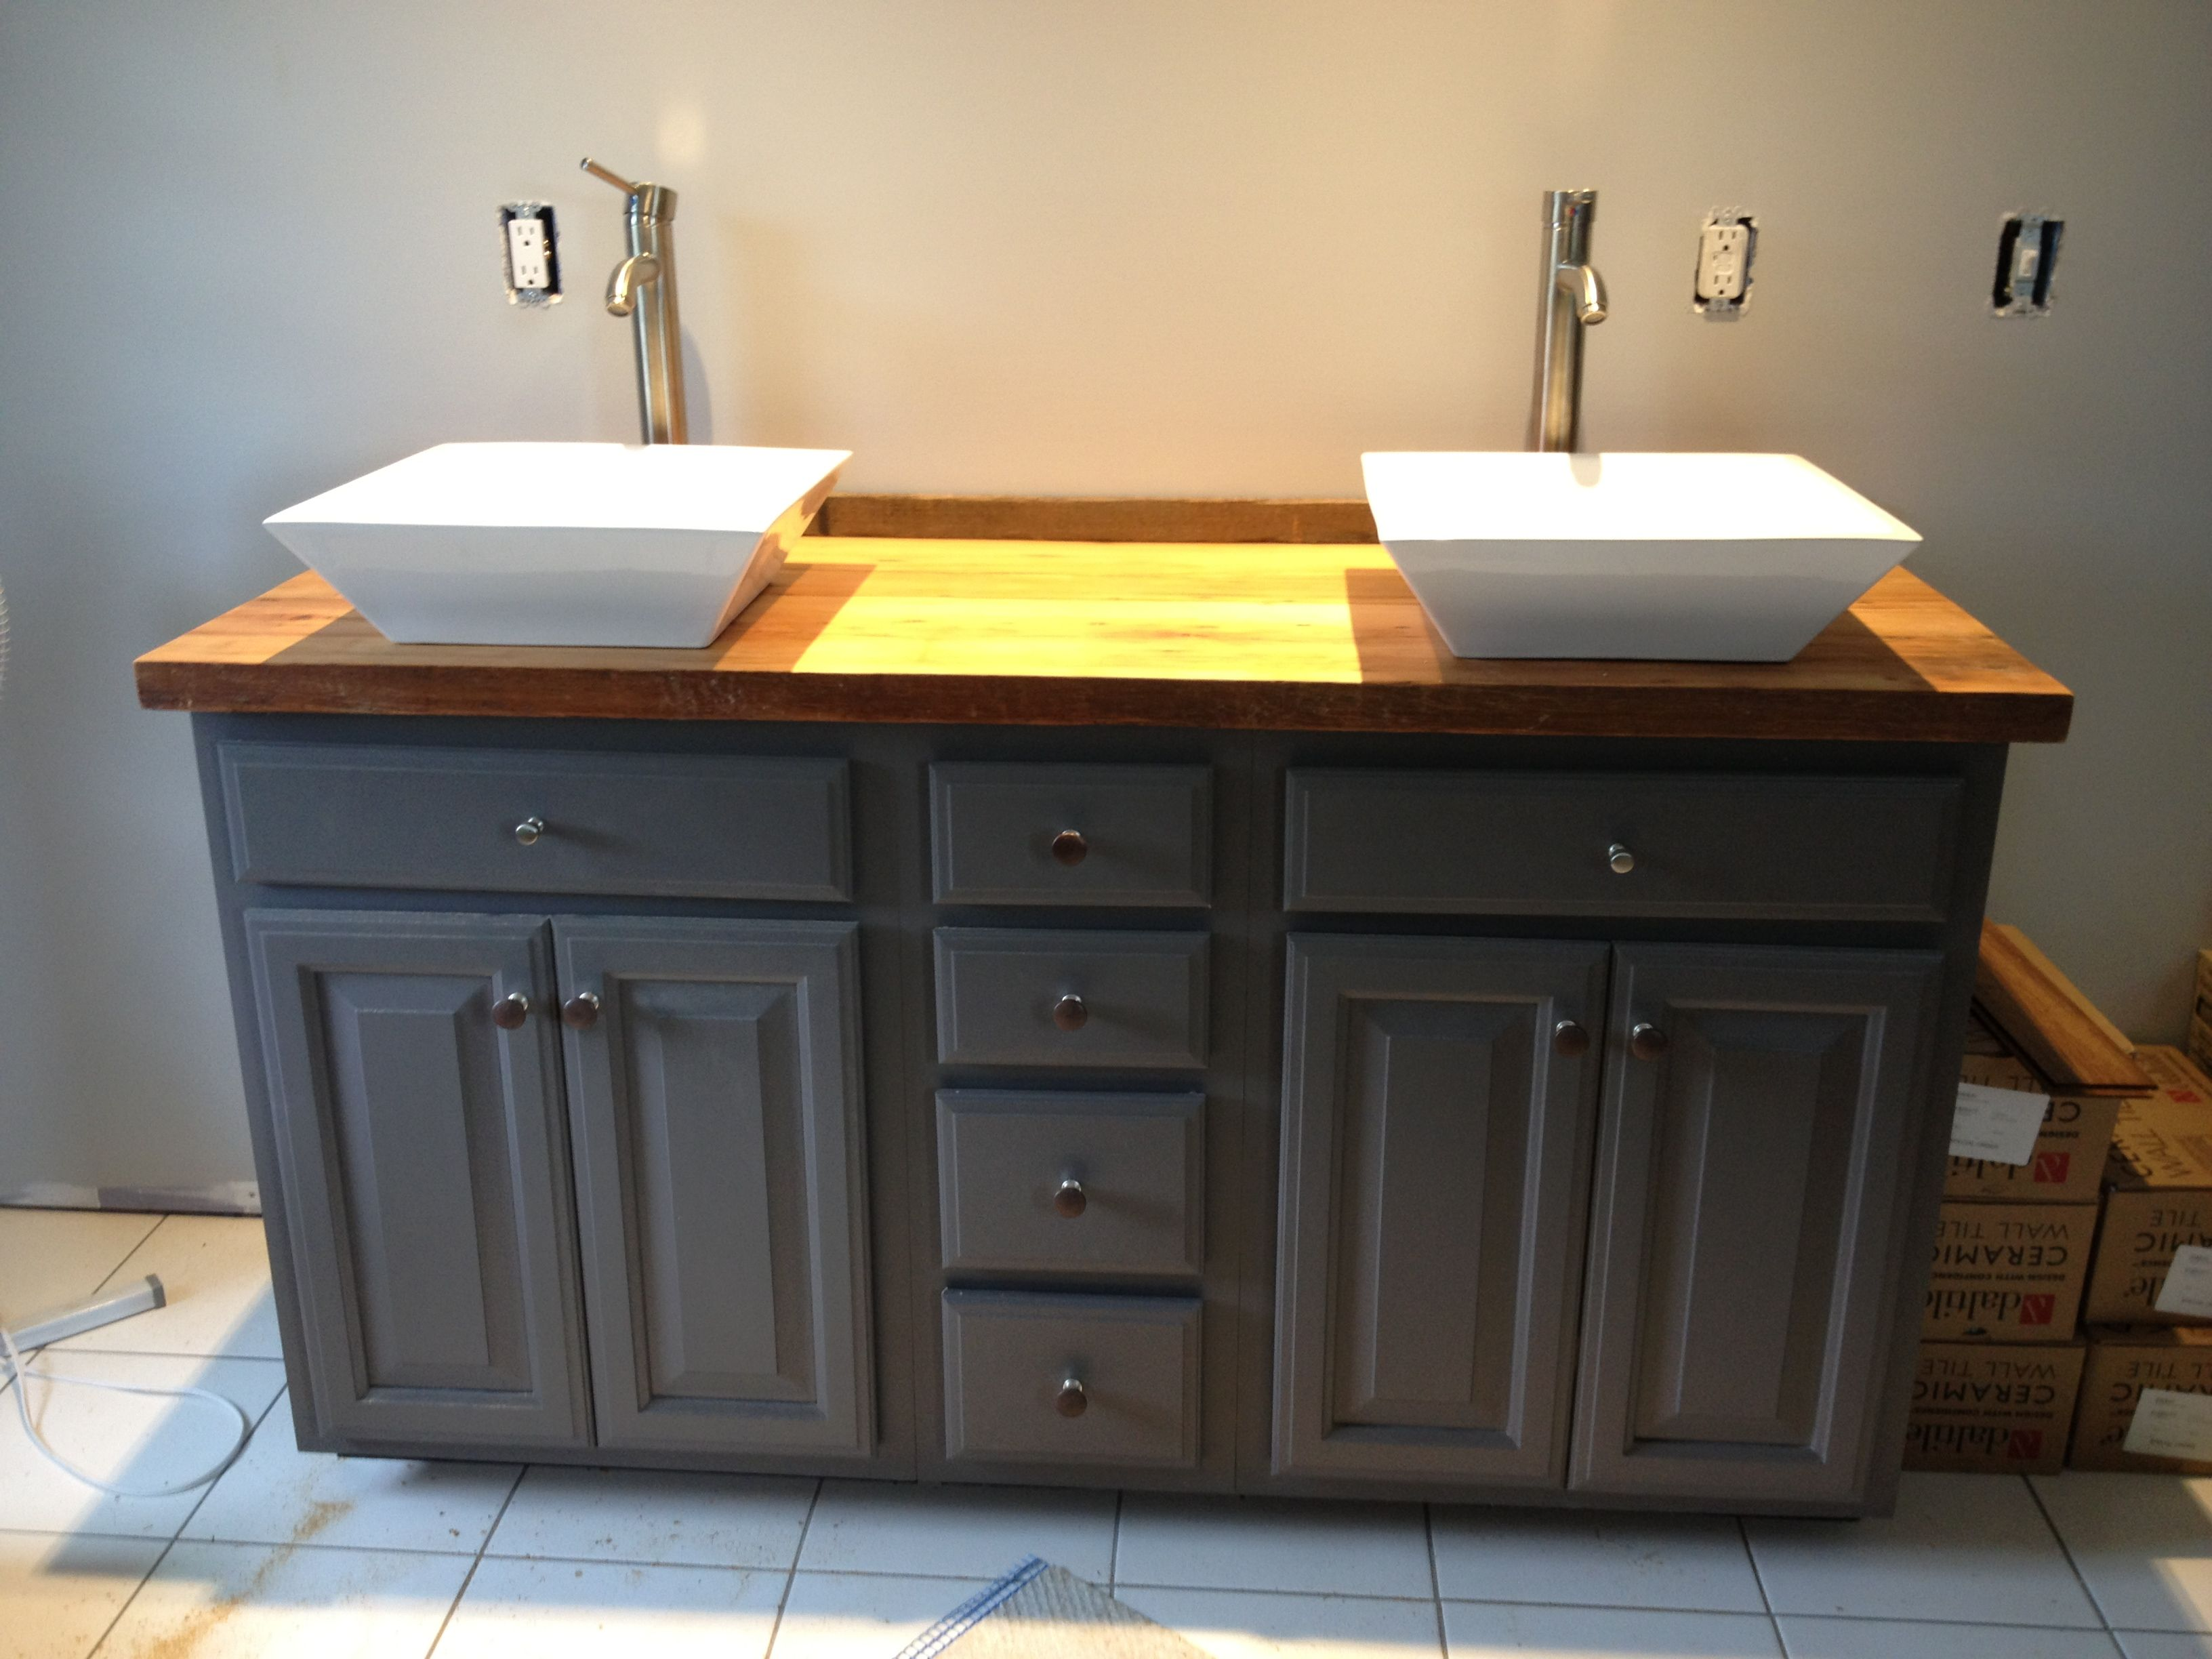 Diy bathroom vanity used the barn wood hemlock pieces for Recycled bathroom sinks